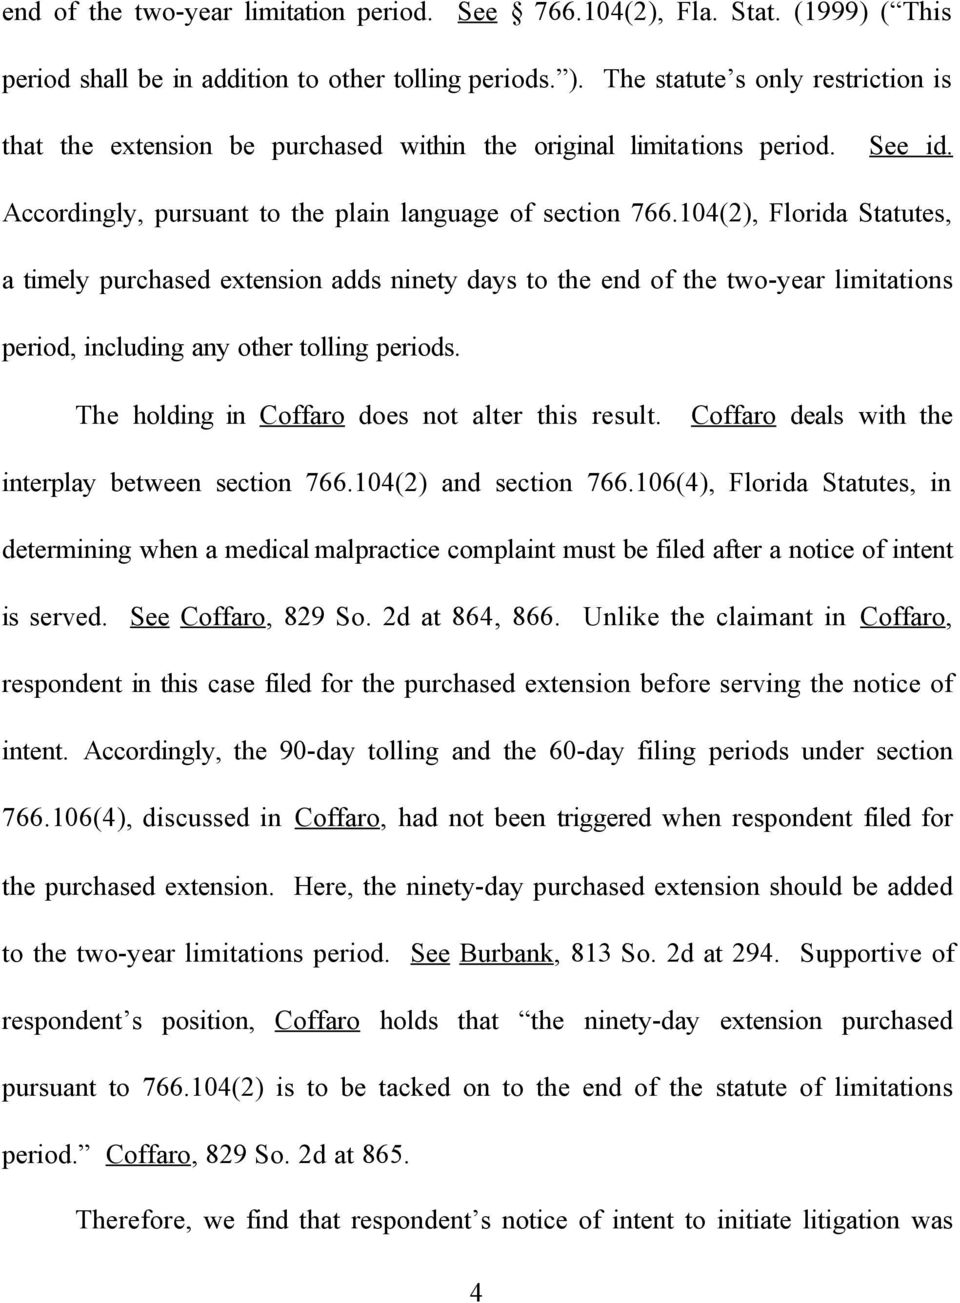 104(2), Florida Statutes, a timely purchased extension adds ninety days to the end of the two-year limitations period, including any other tolling periods.